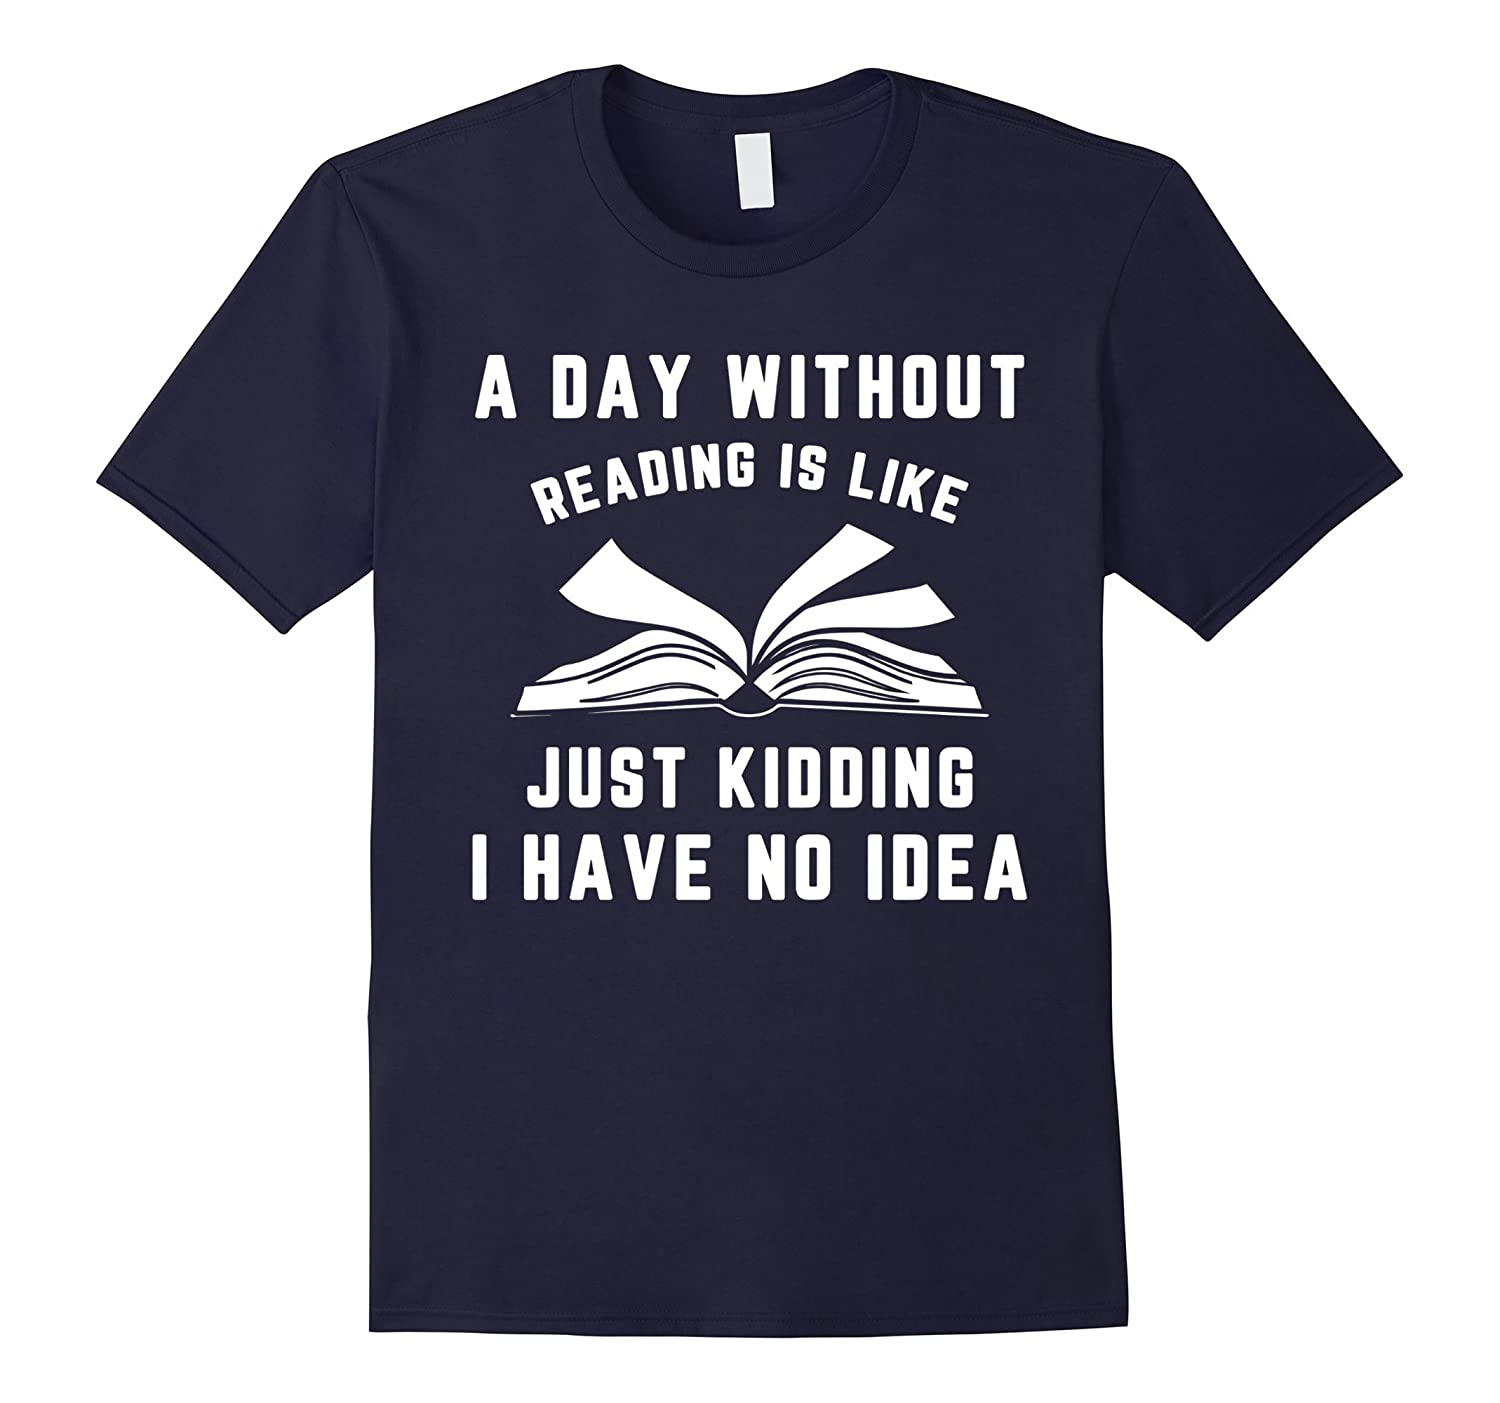 A day without reading is like Just kidding I have no idea-PL